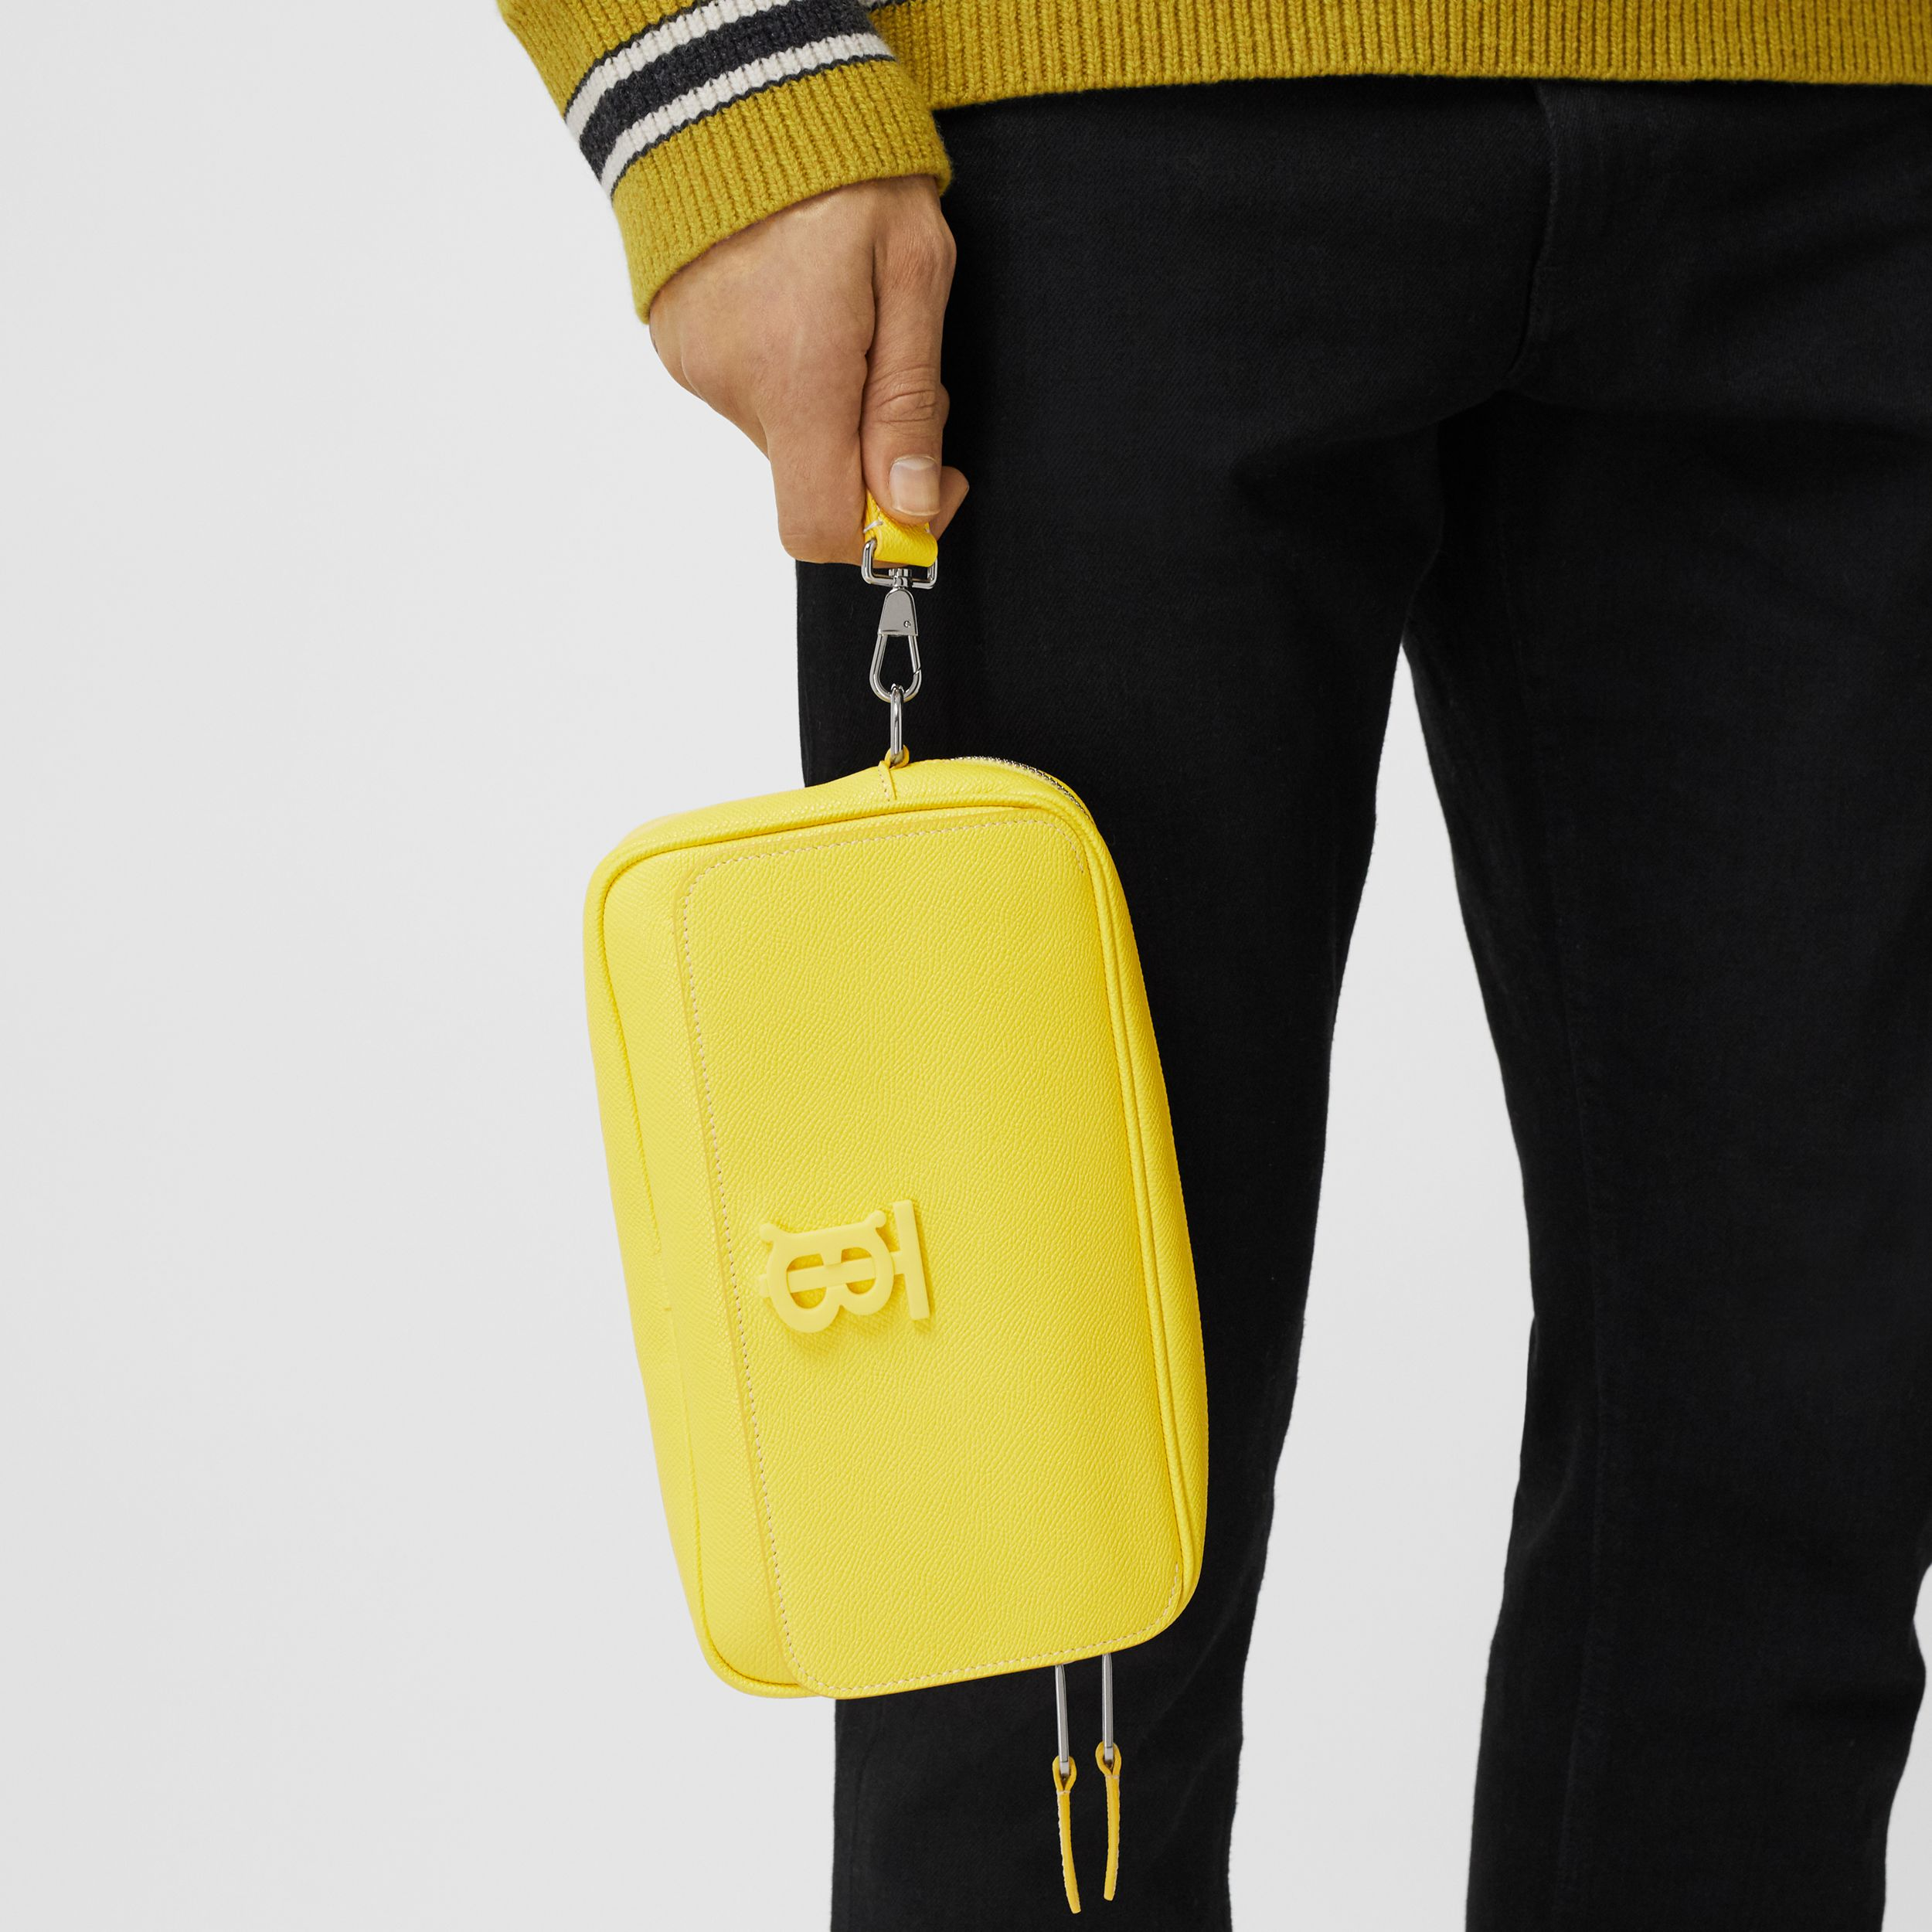 Monogram Motif Grainy Leather Bum Bag in Marigold Yellow - Men | Burberry - 4